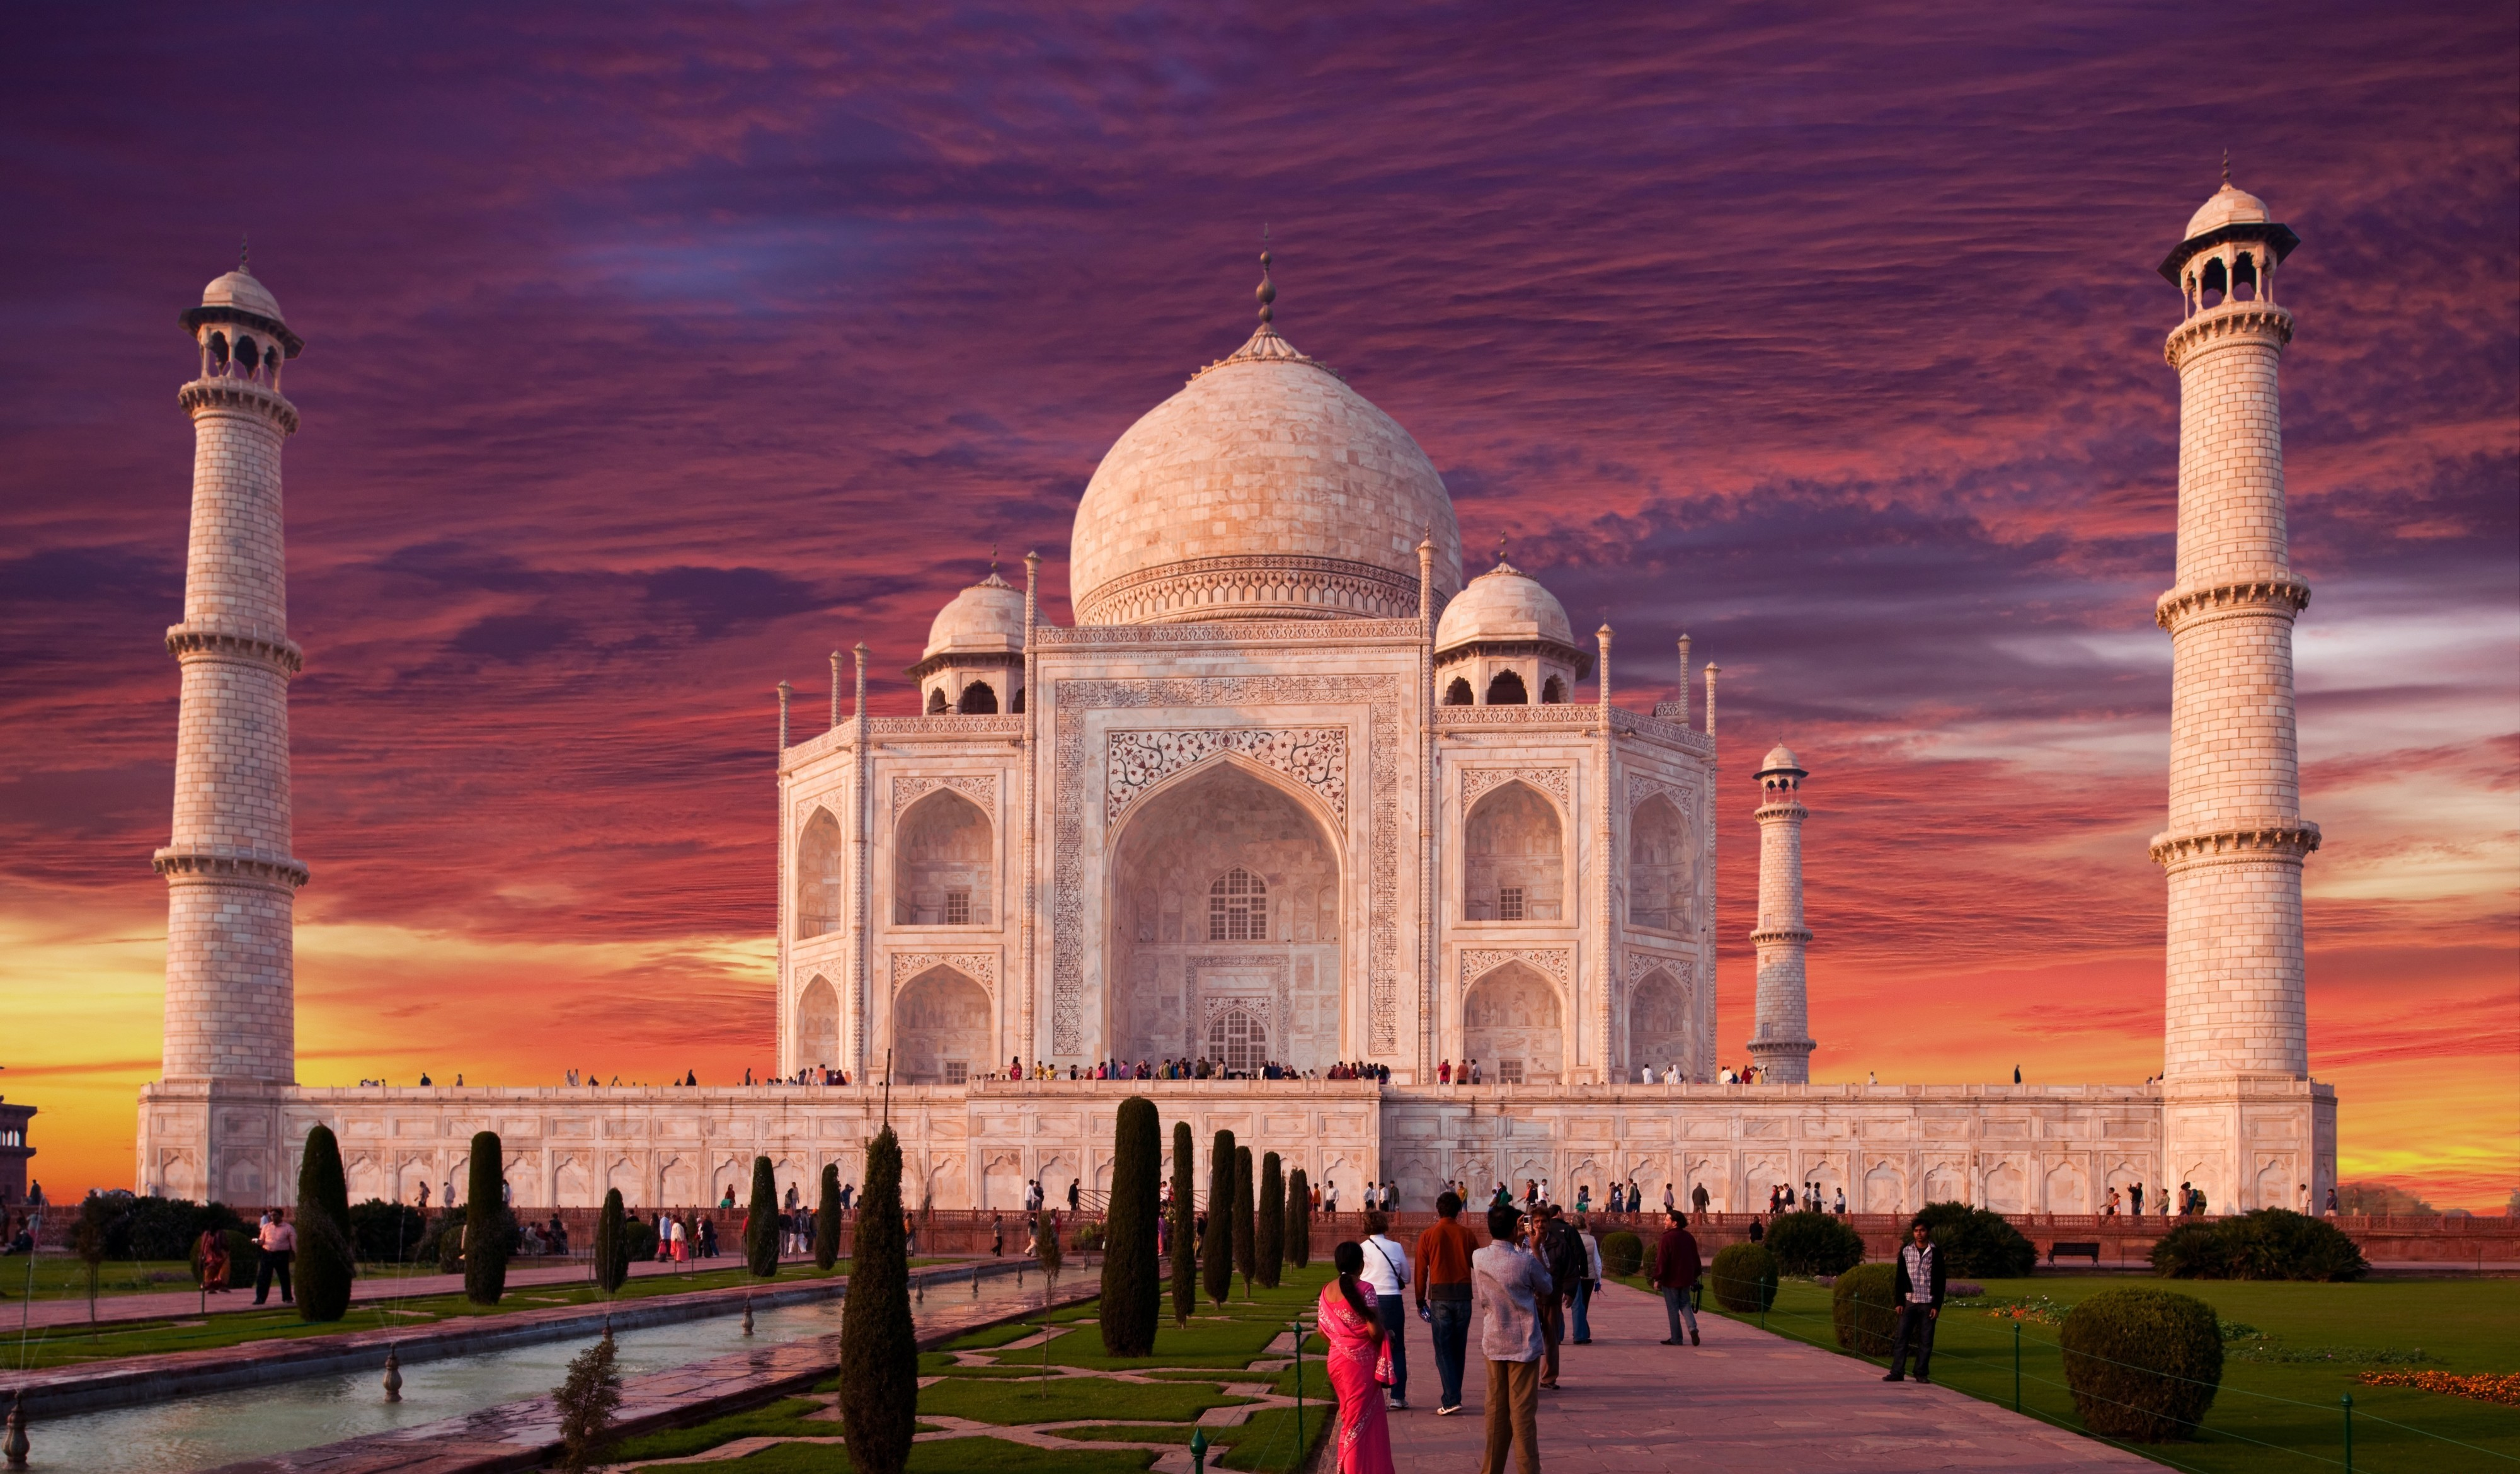 Taj Mahal Hd Wallpaper Man Made Taj Mahal Agra India Sunset Sky Uttar Pradesh